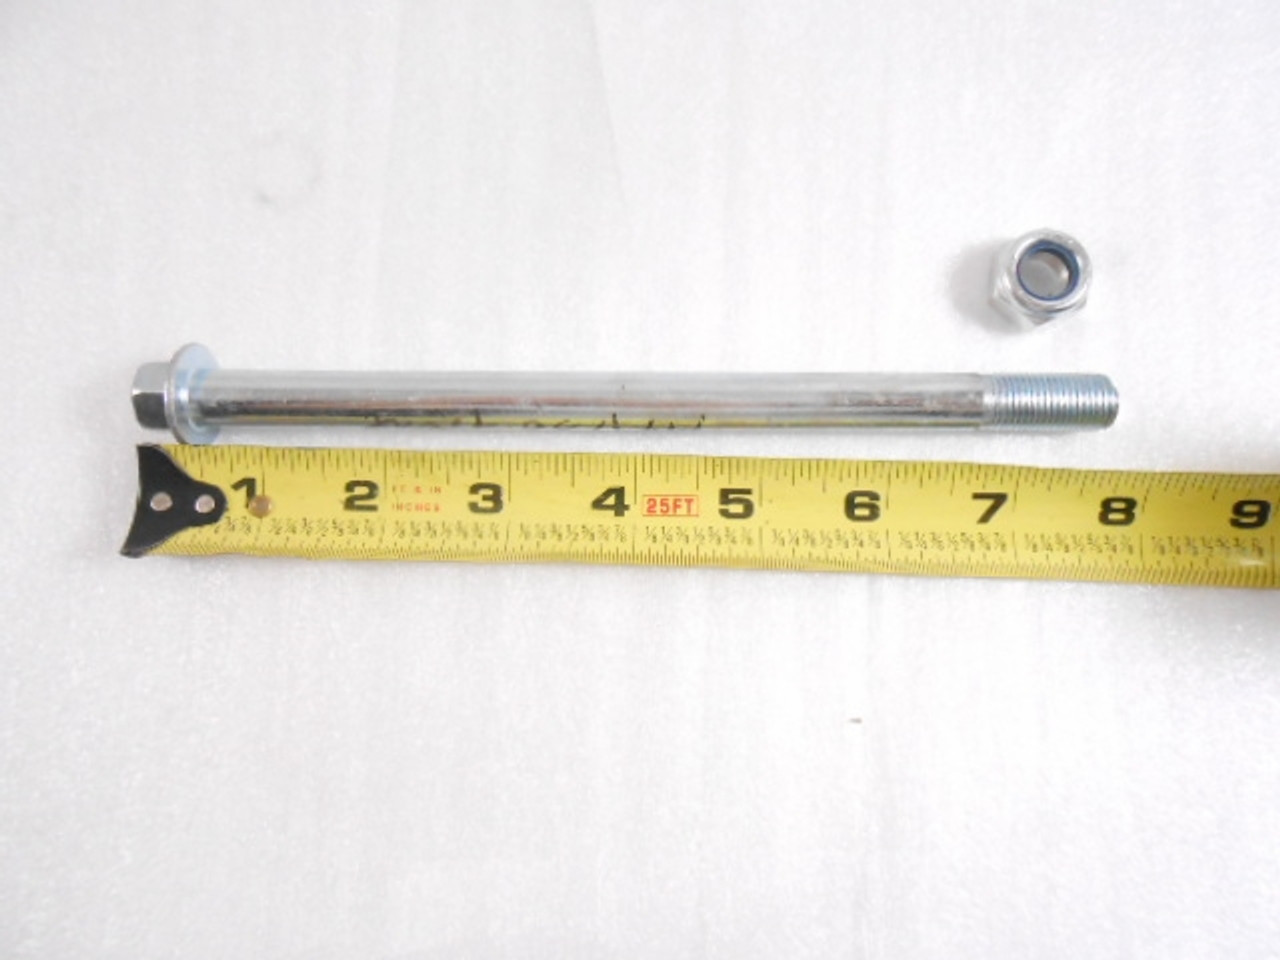 AXLE (FRONT) 14044-A225-12